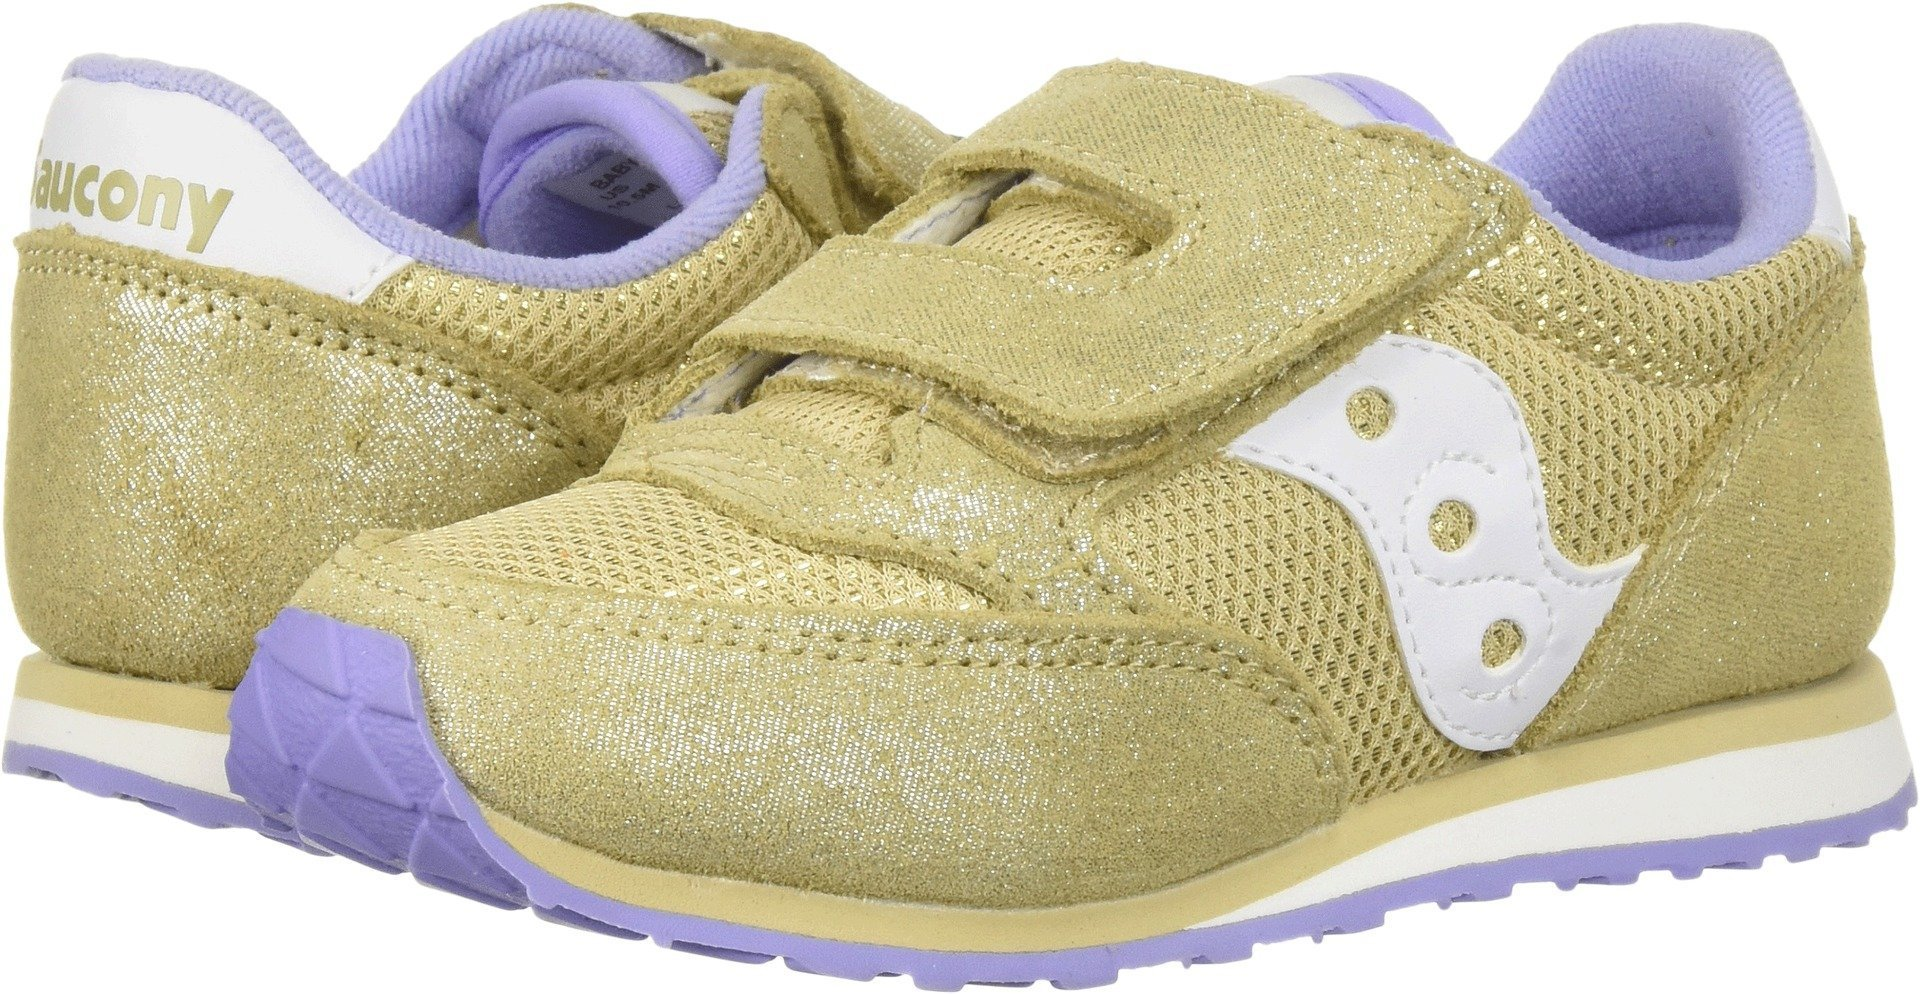 Saucony Girls' Baby Jazz HL Sneaker, Gold/Spark, 9.5 Medium US Toddler